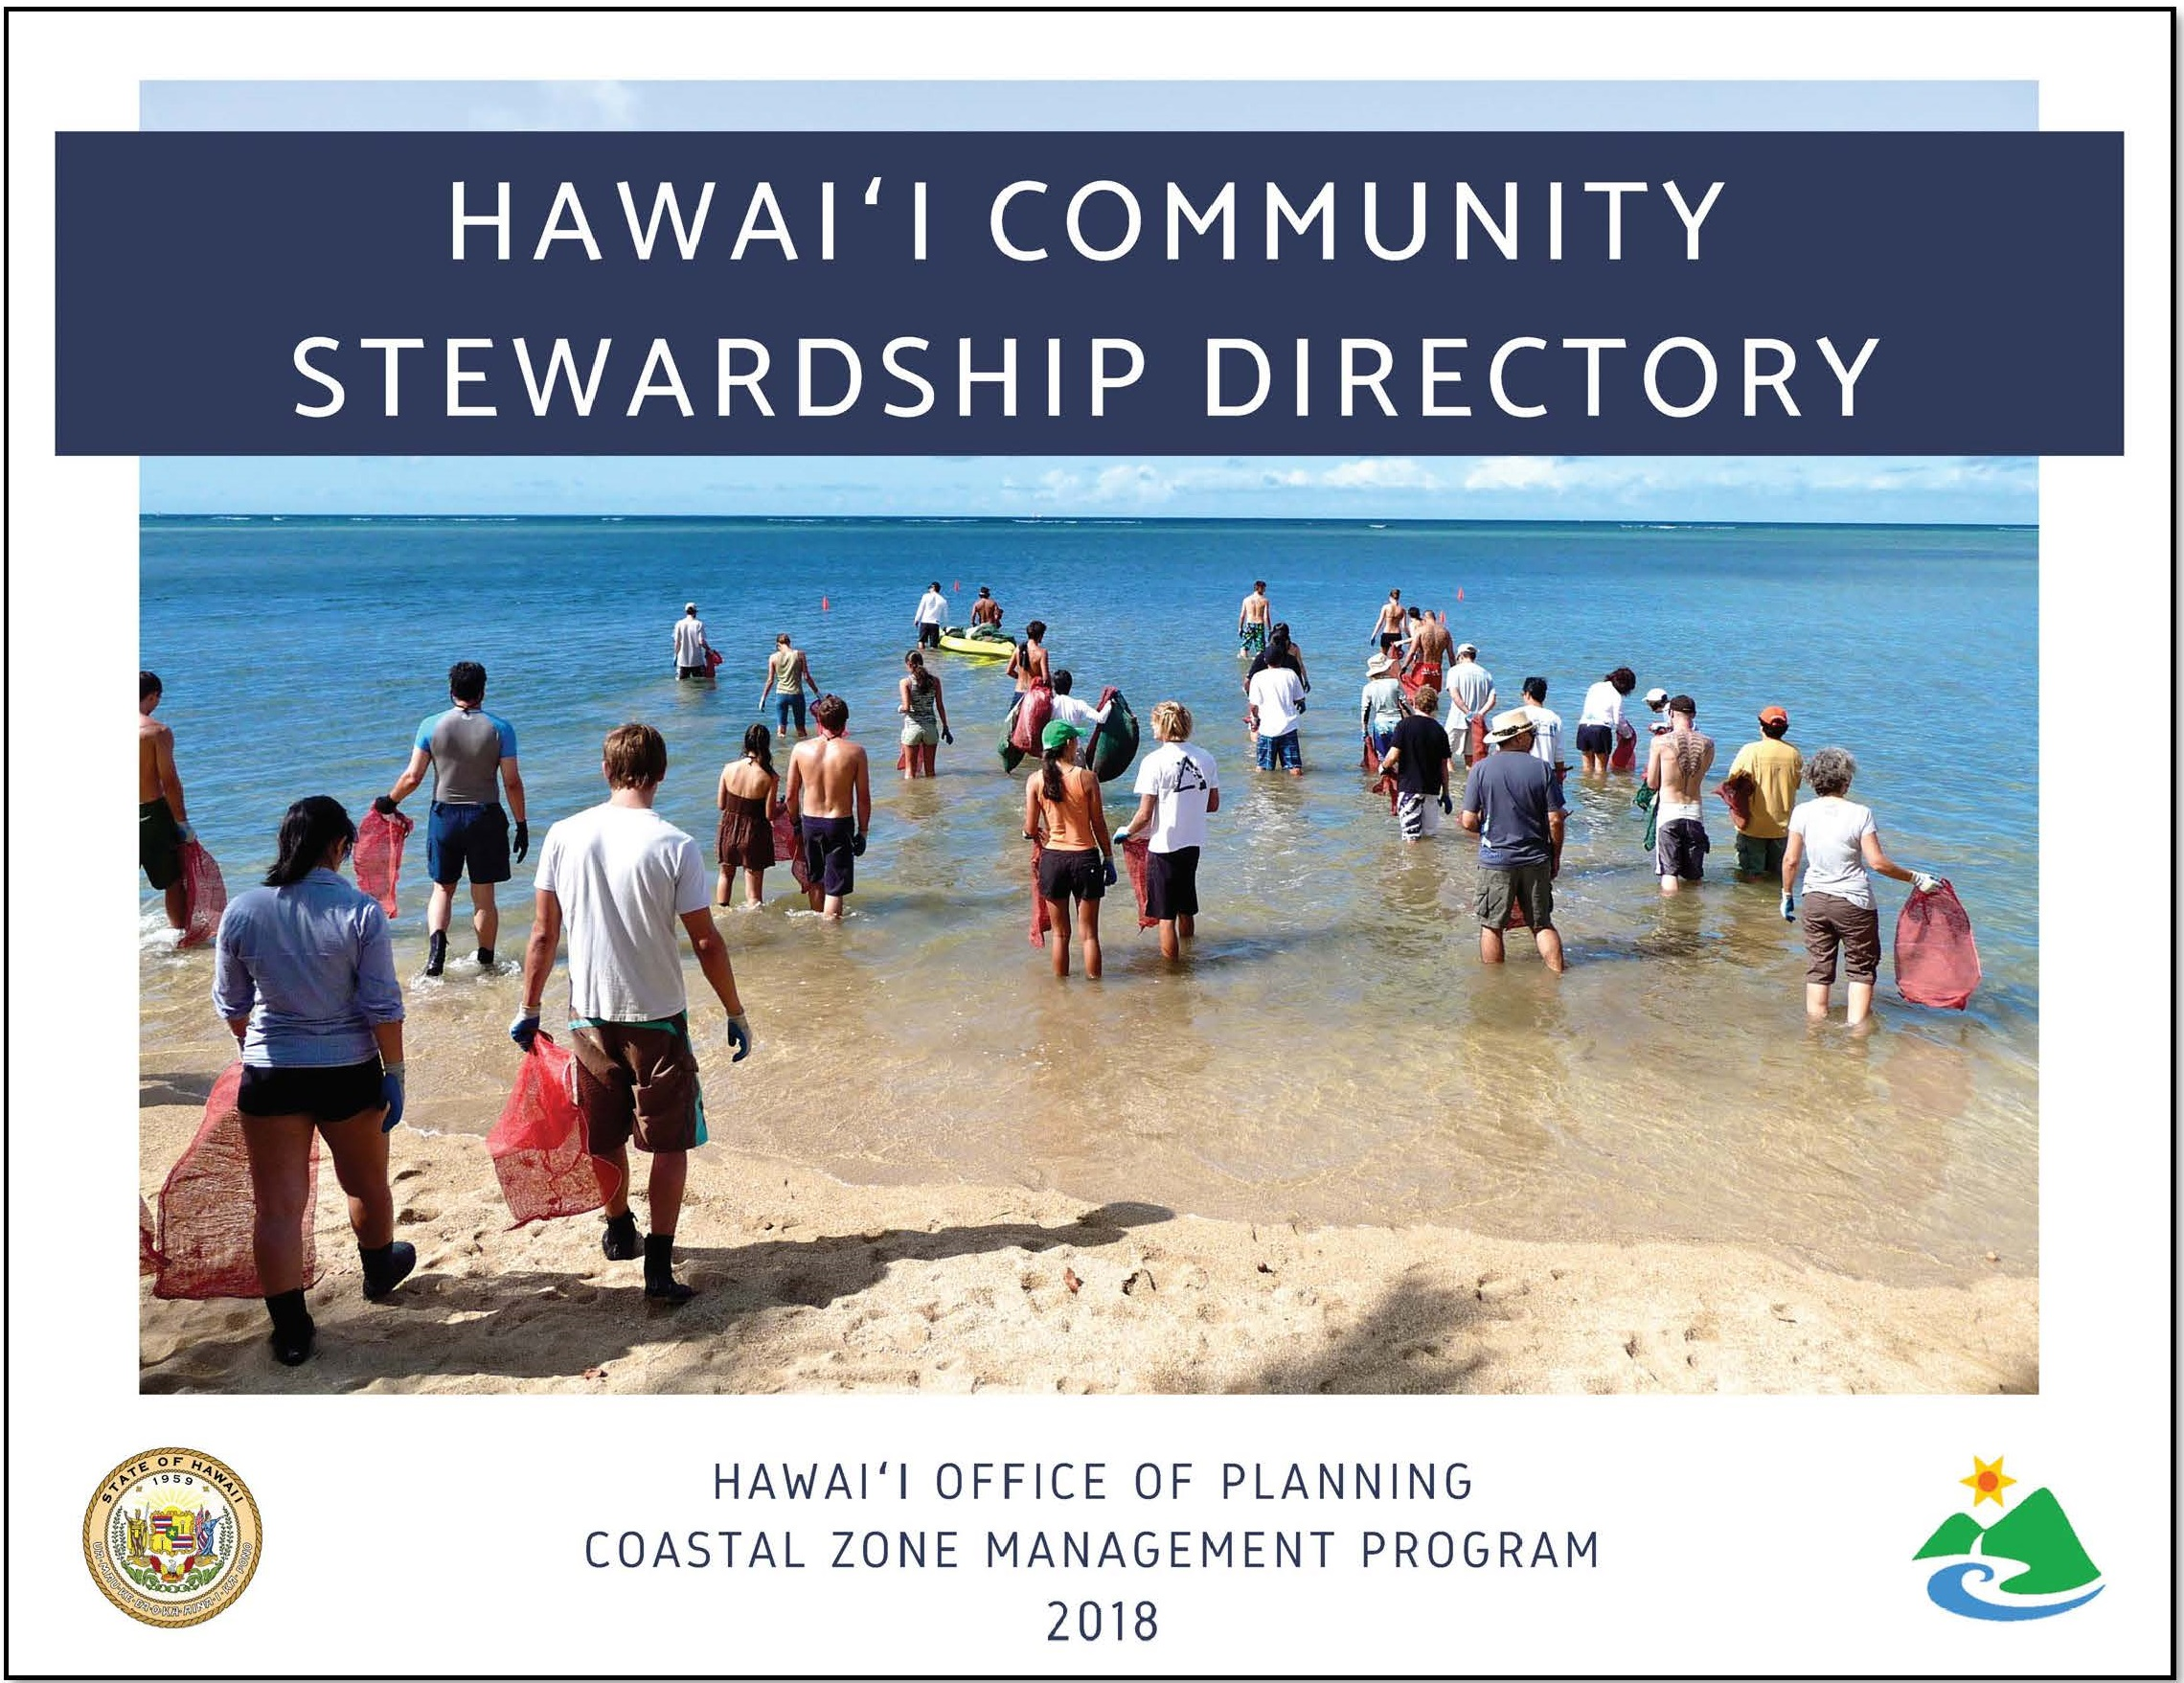 2018 Hawaii Community Stewardship Directory cover with image of community beach cleanup